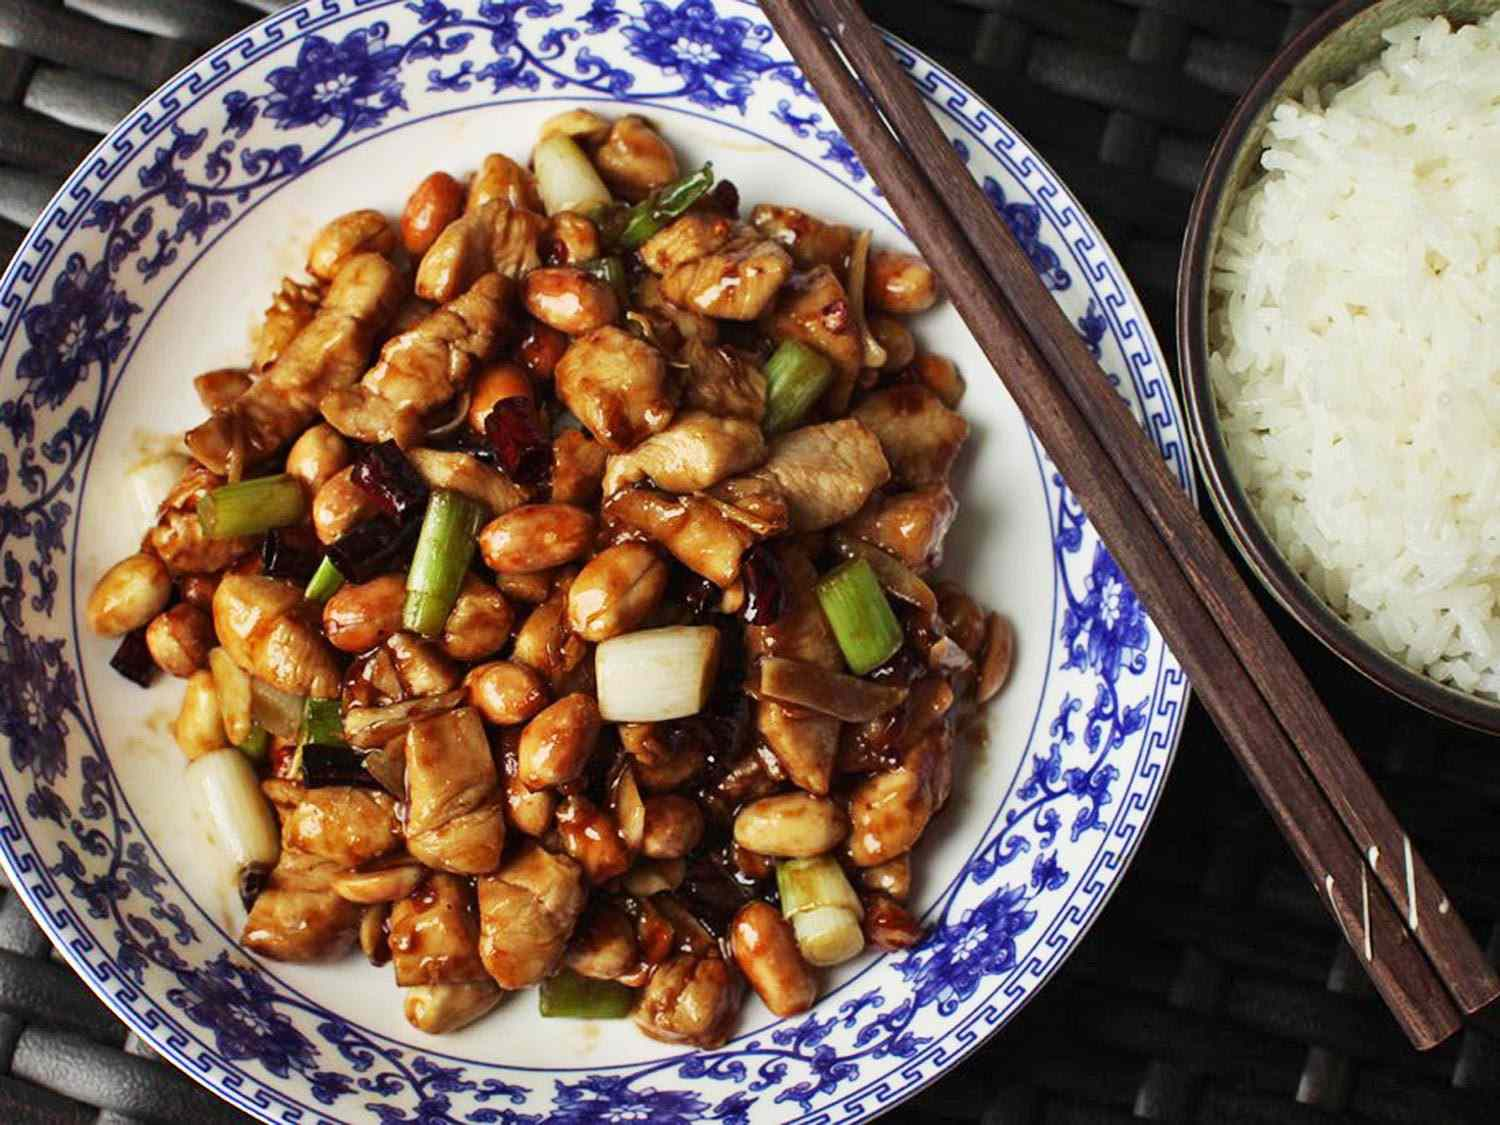 Kung pao chicken in a blue and white bowl with chopsticks. White rice in a bowl on the side.